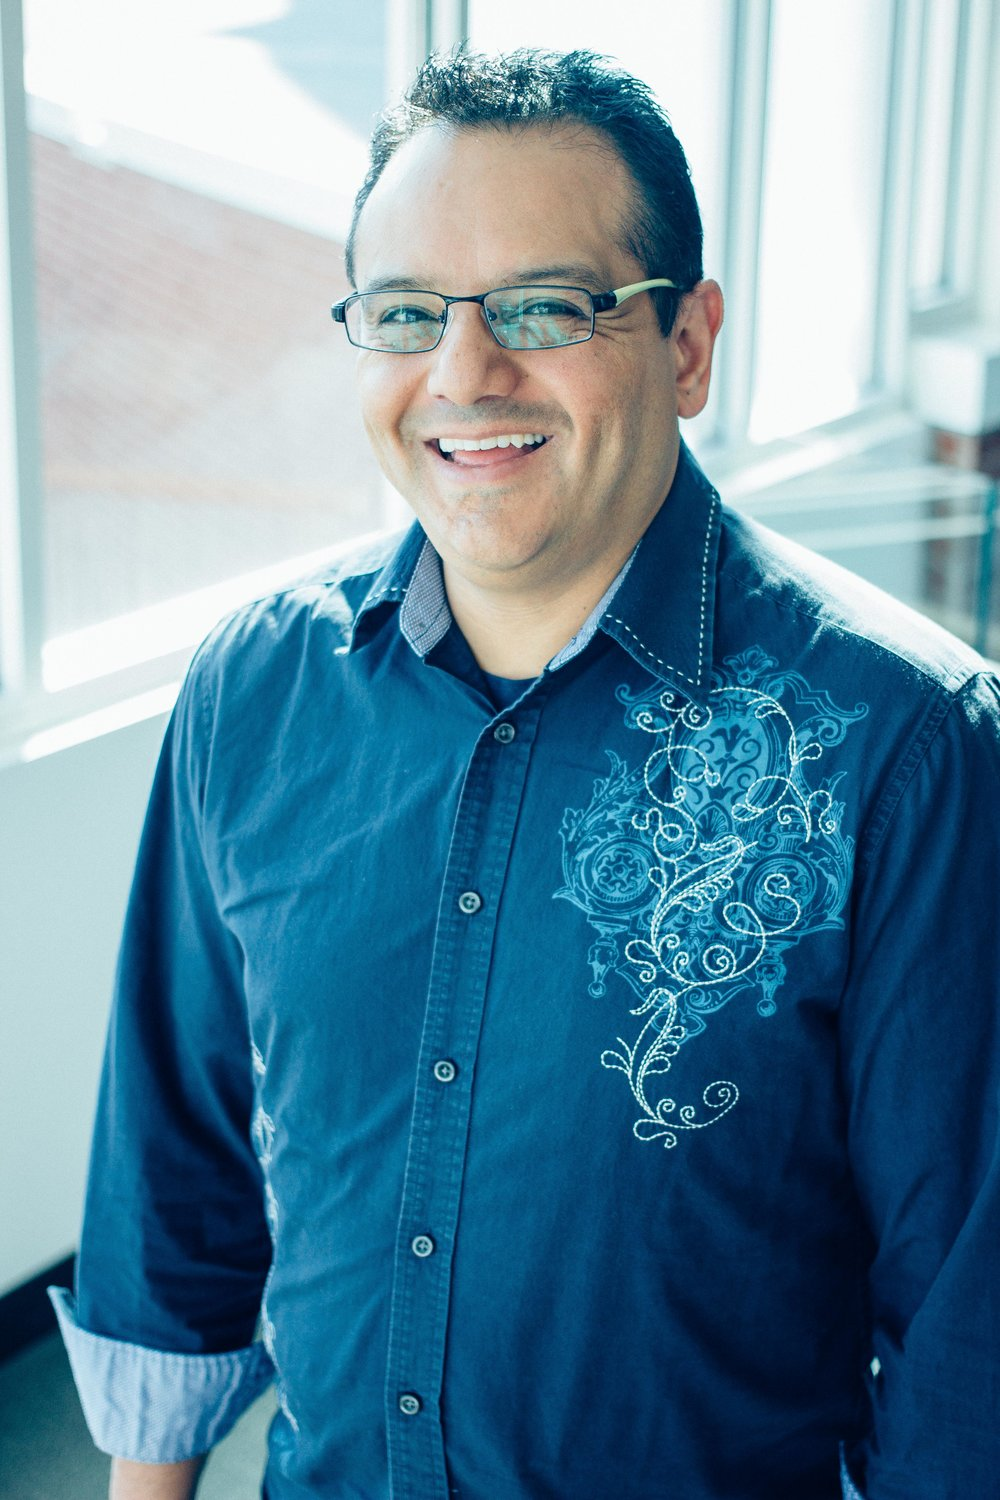 <p><strong>Enrique Uria</strong>Pastor of Campus Español</strong><br><bold>enrique.uria@indiancreek.org</bold></p>